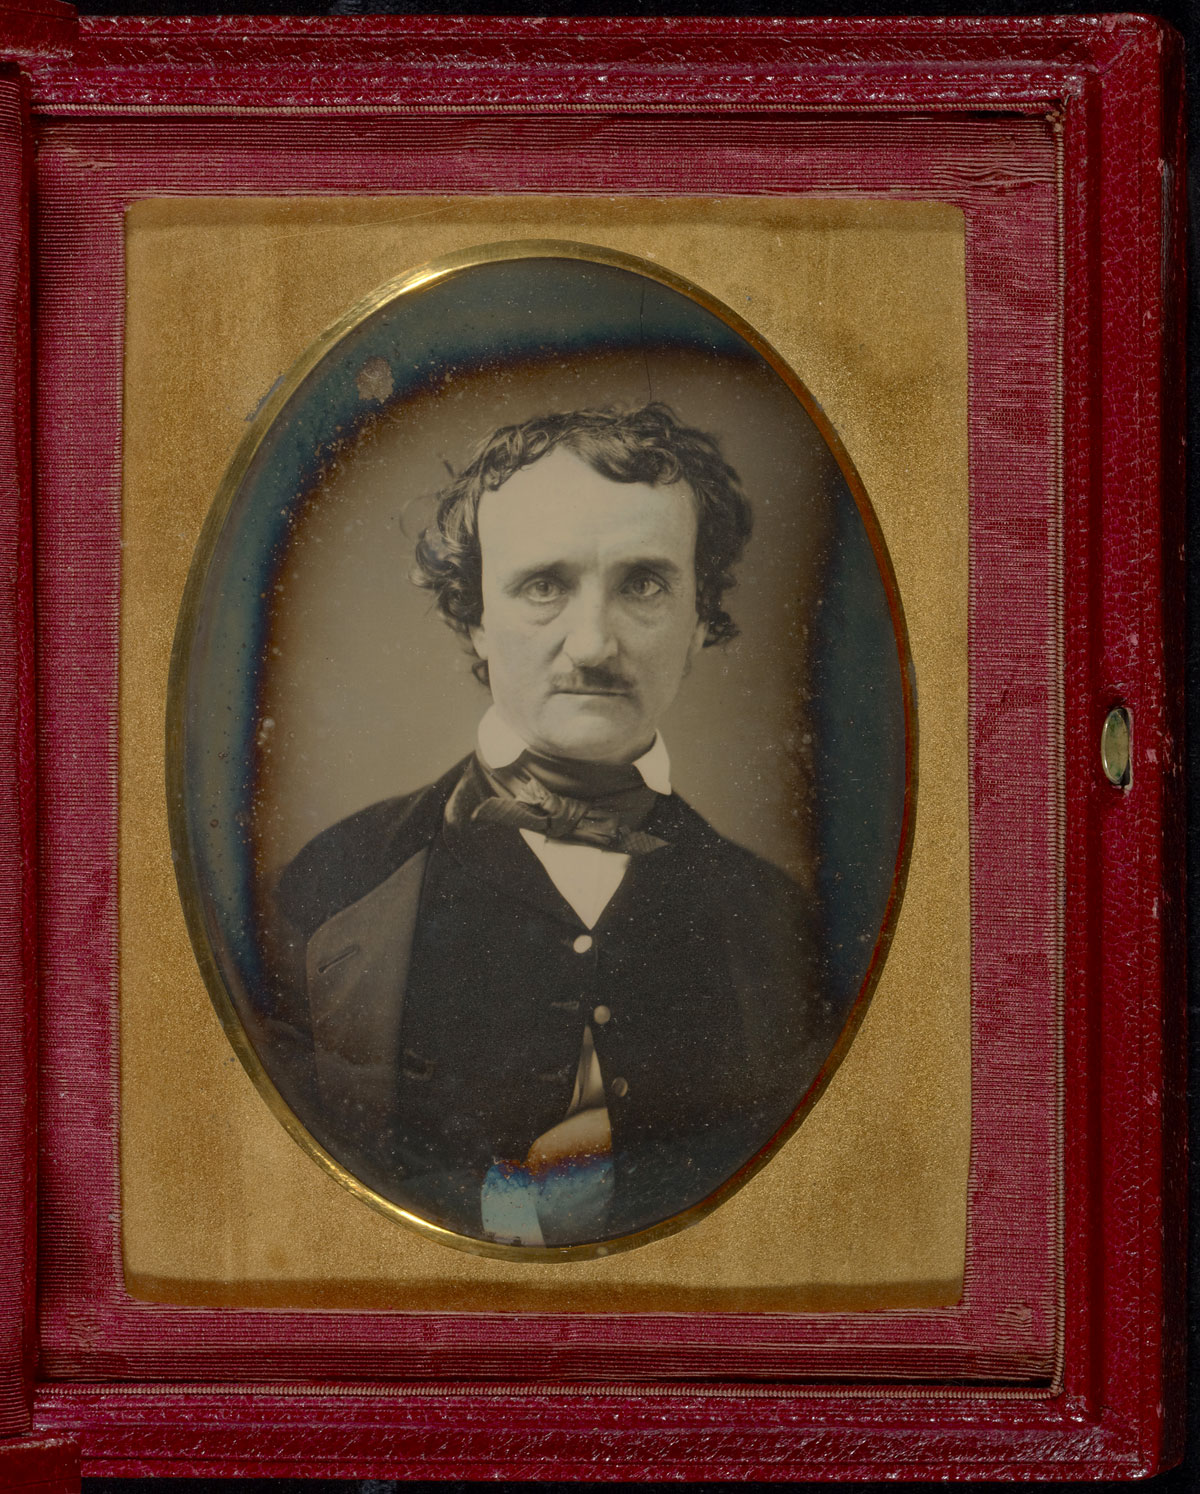 Fotó: Unknown maker (American)<br />Portrait of Edgar Allan Poe<br />late May – early June 1849<br />Daguerreotype<br />1/2 plate<br />Image: 12.2 x 8.9 cm (4 13/16 x 3 1/2 in.)<br />Mat (and overmat): 15.6 x 12.7 cm (6 1/8 x 5 in.)<br />Object (whole): 17.9 x 14.9 cm (7 1/16 x 5 7/8 in.)<br />The J. Paul Getty Museum, Los Angeles